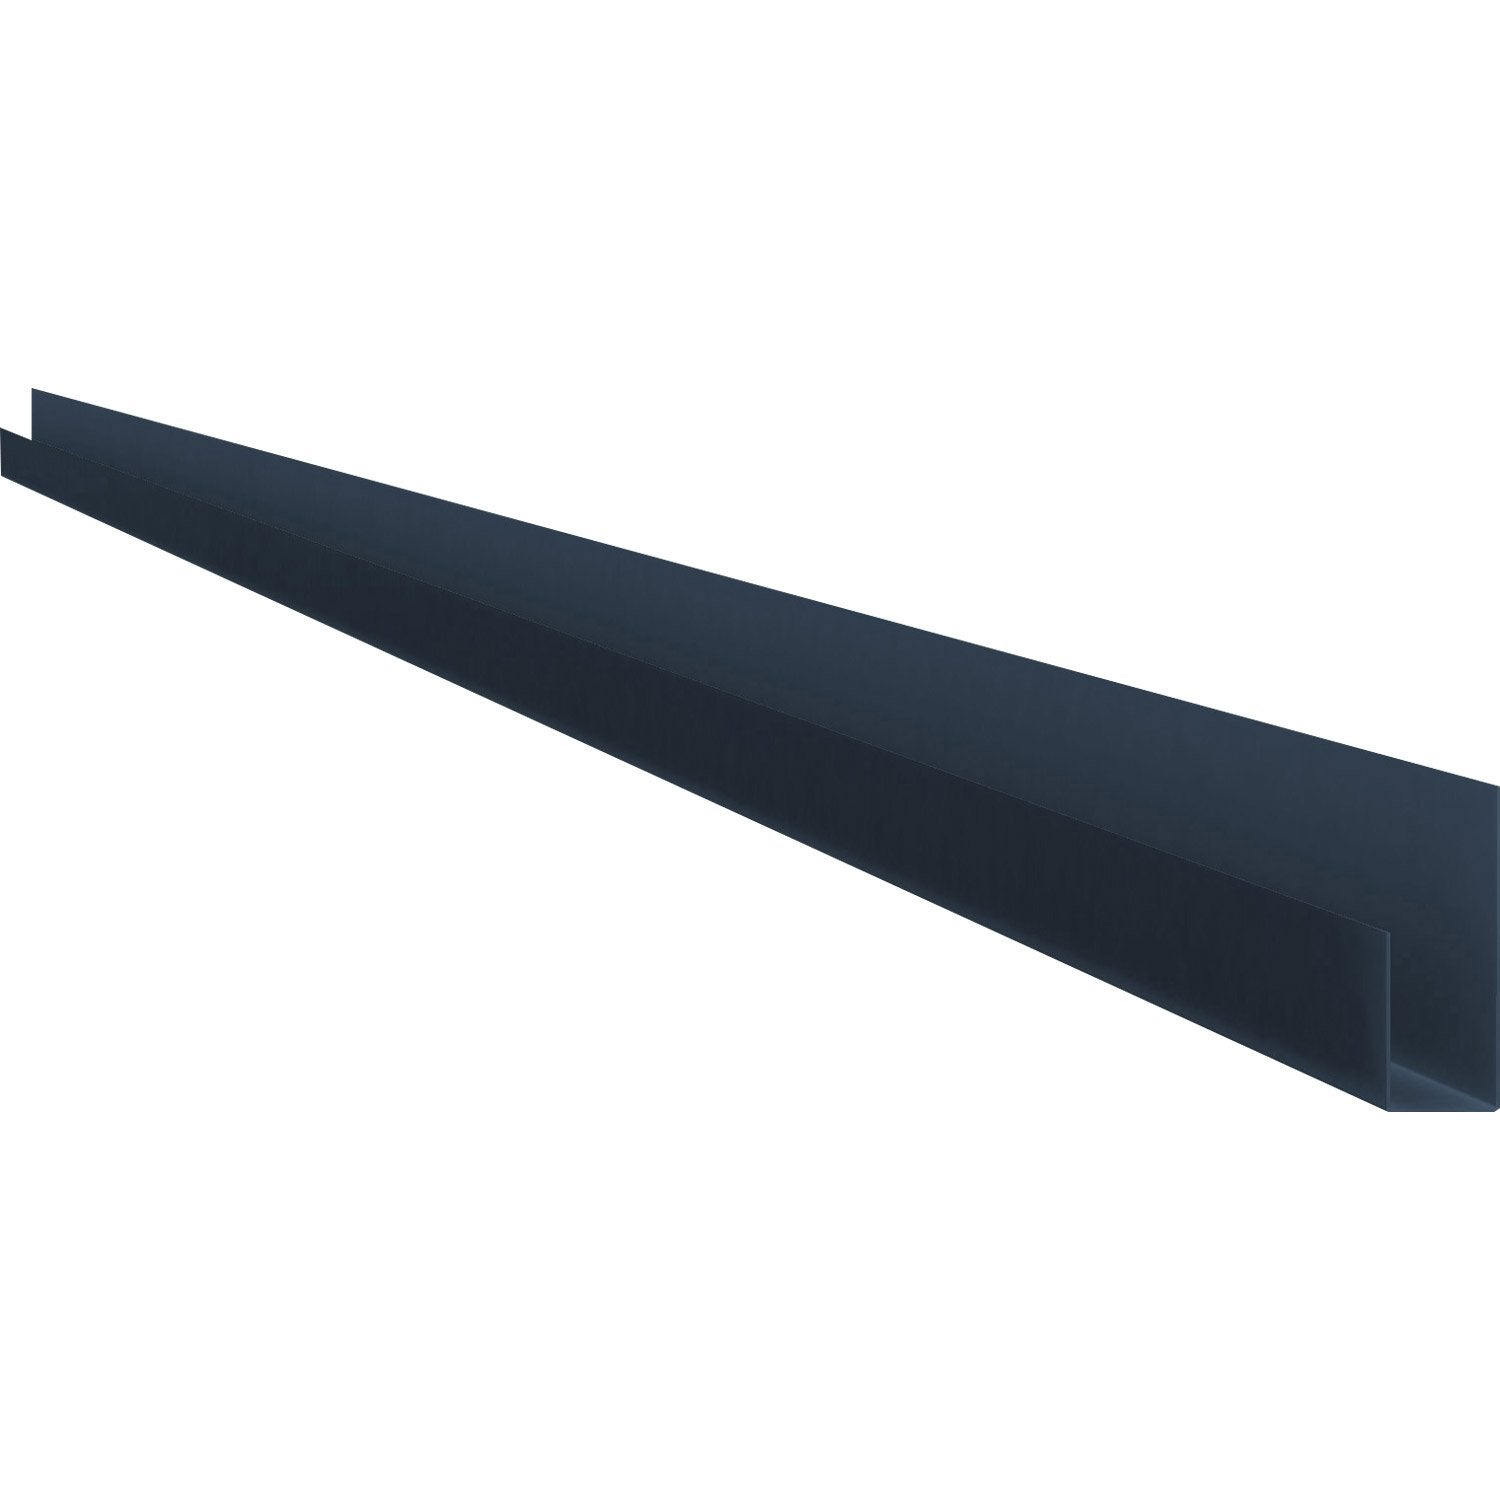 Profil multifonction acier lameo gris anthracite ral 7016 for Portillon pvc gris anthracite